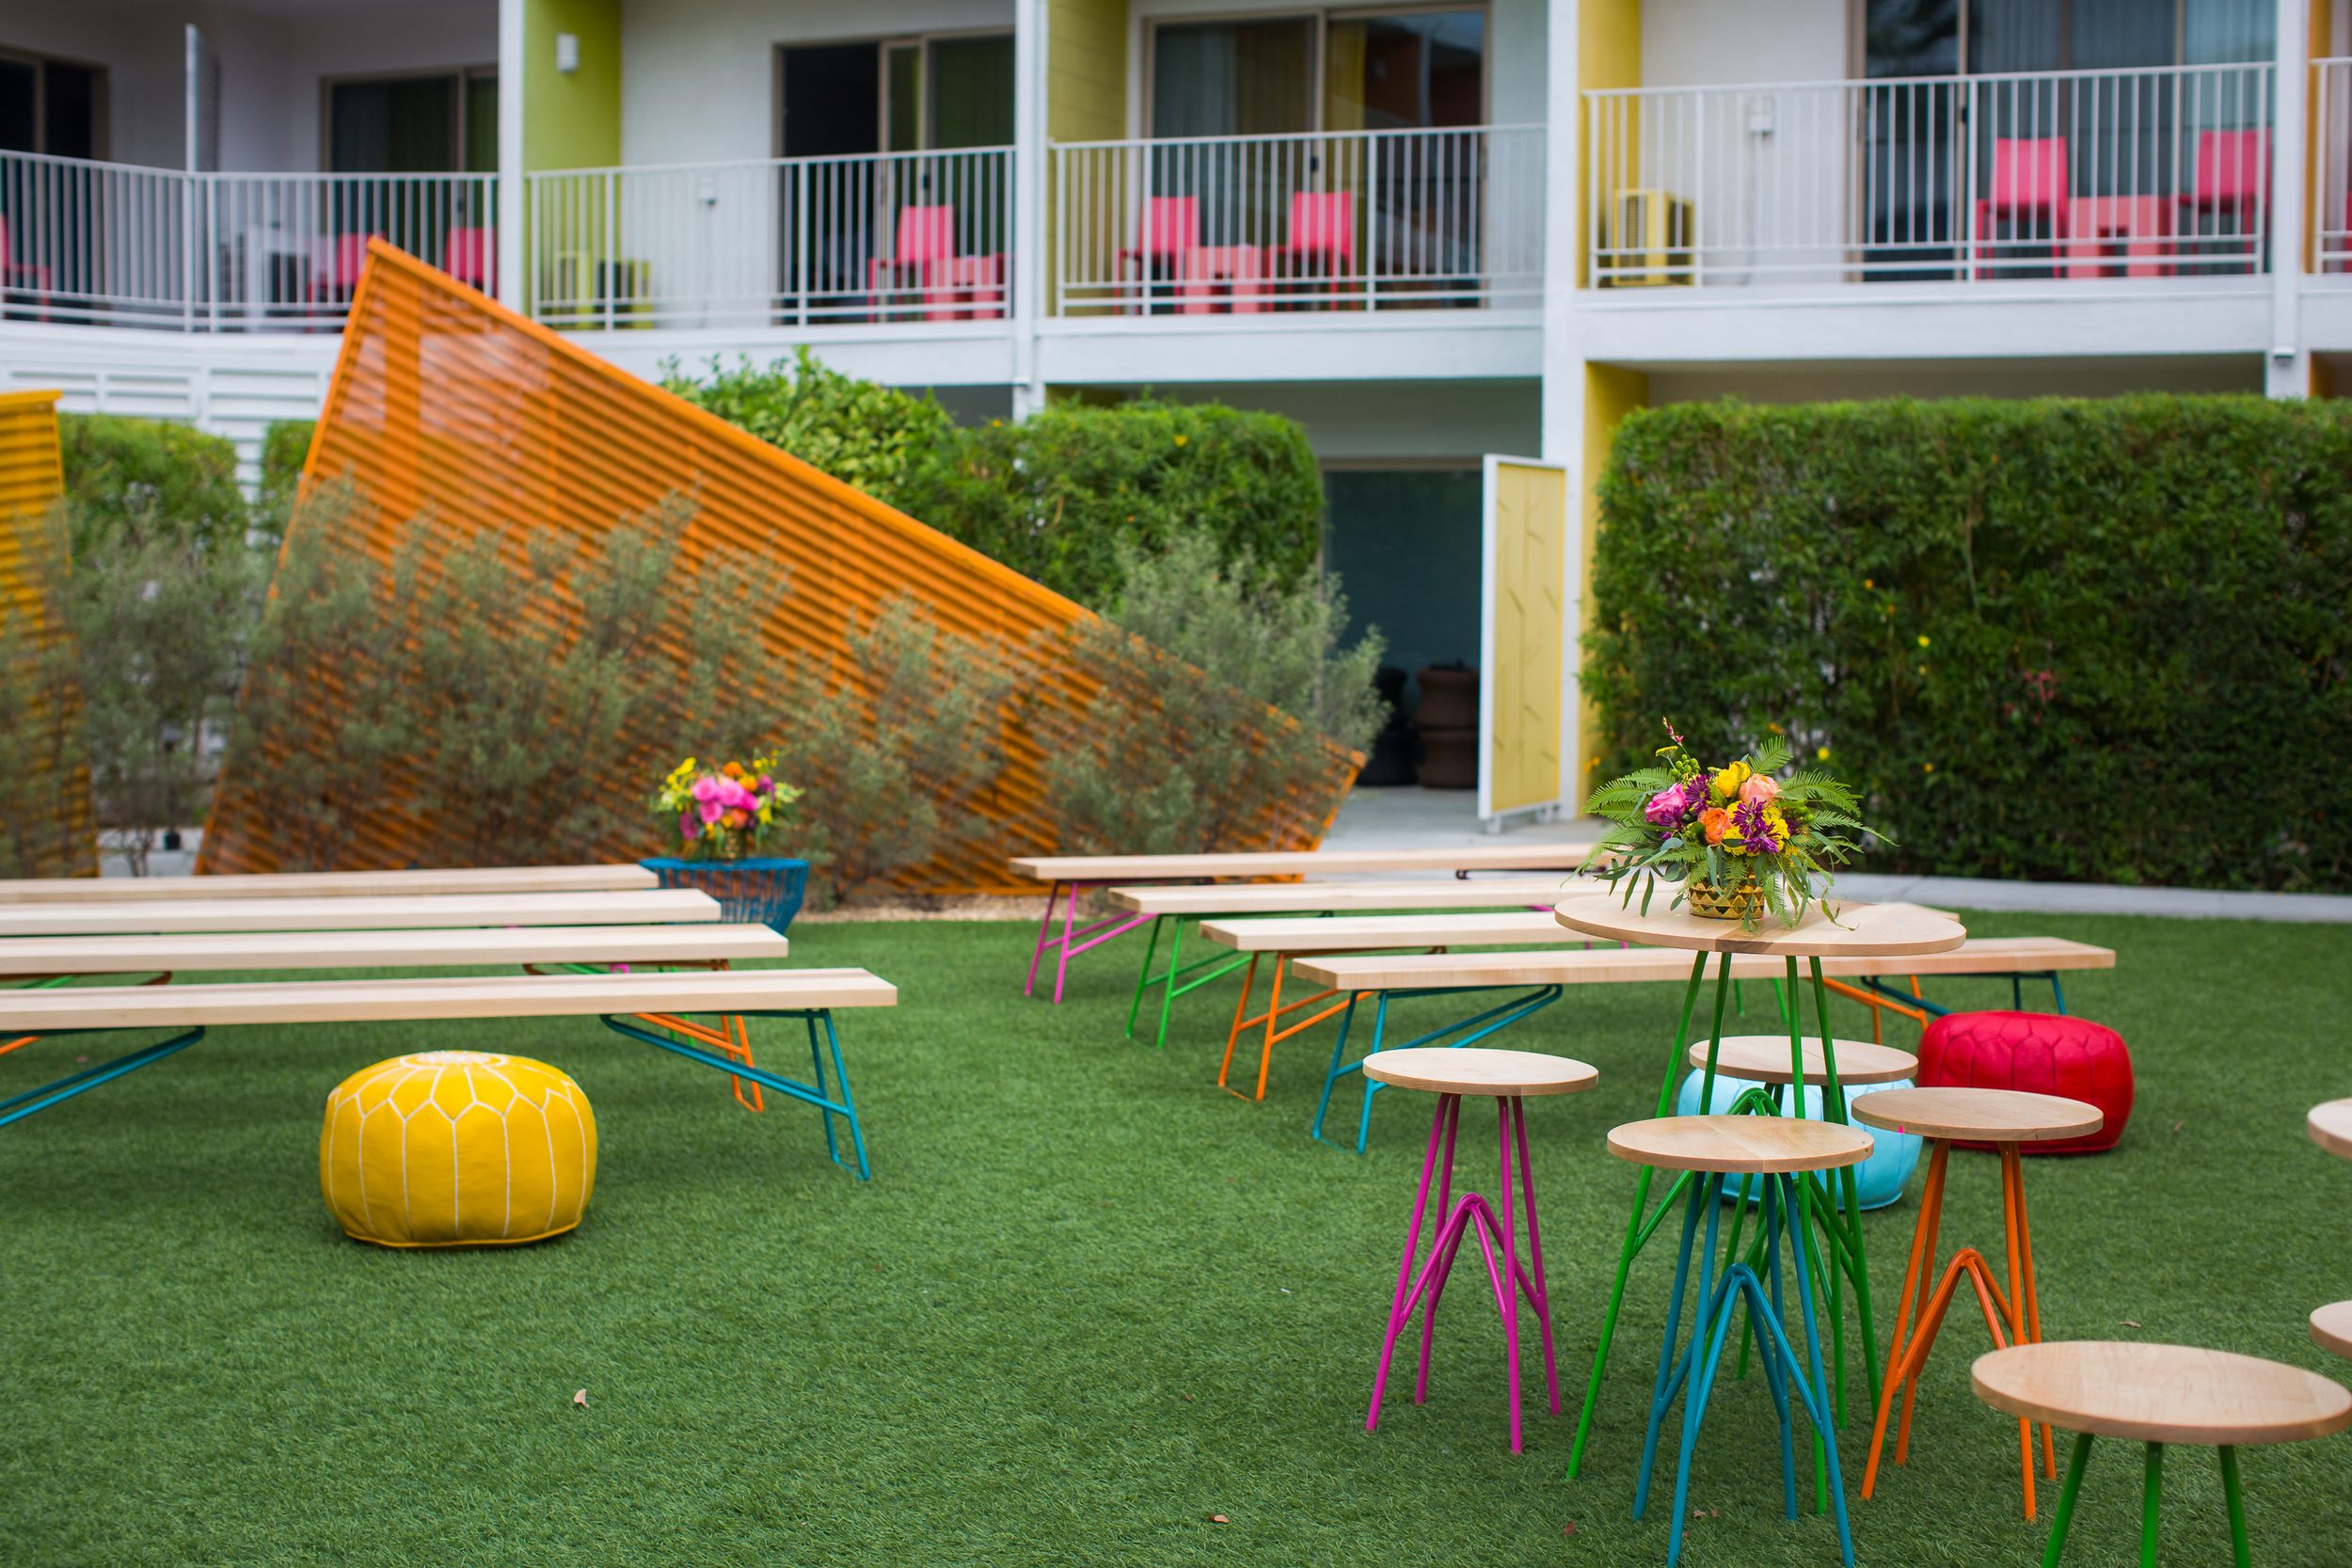 The Saguaro Hotel Tables, Benches & Seating